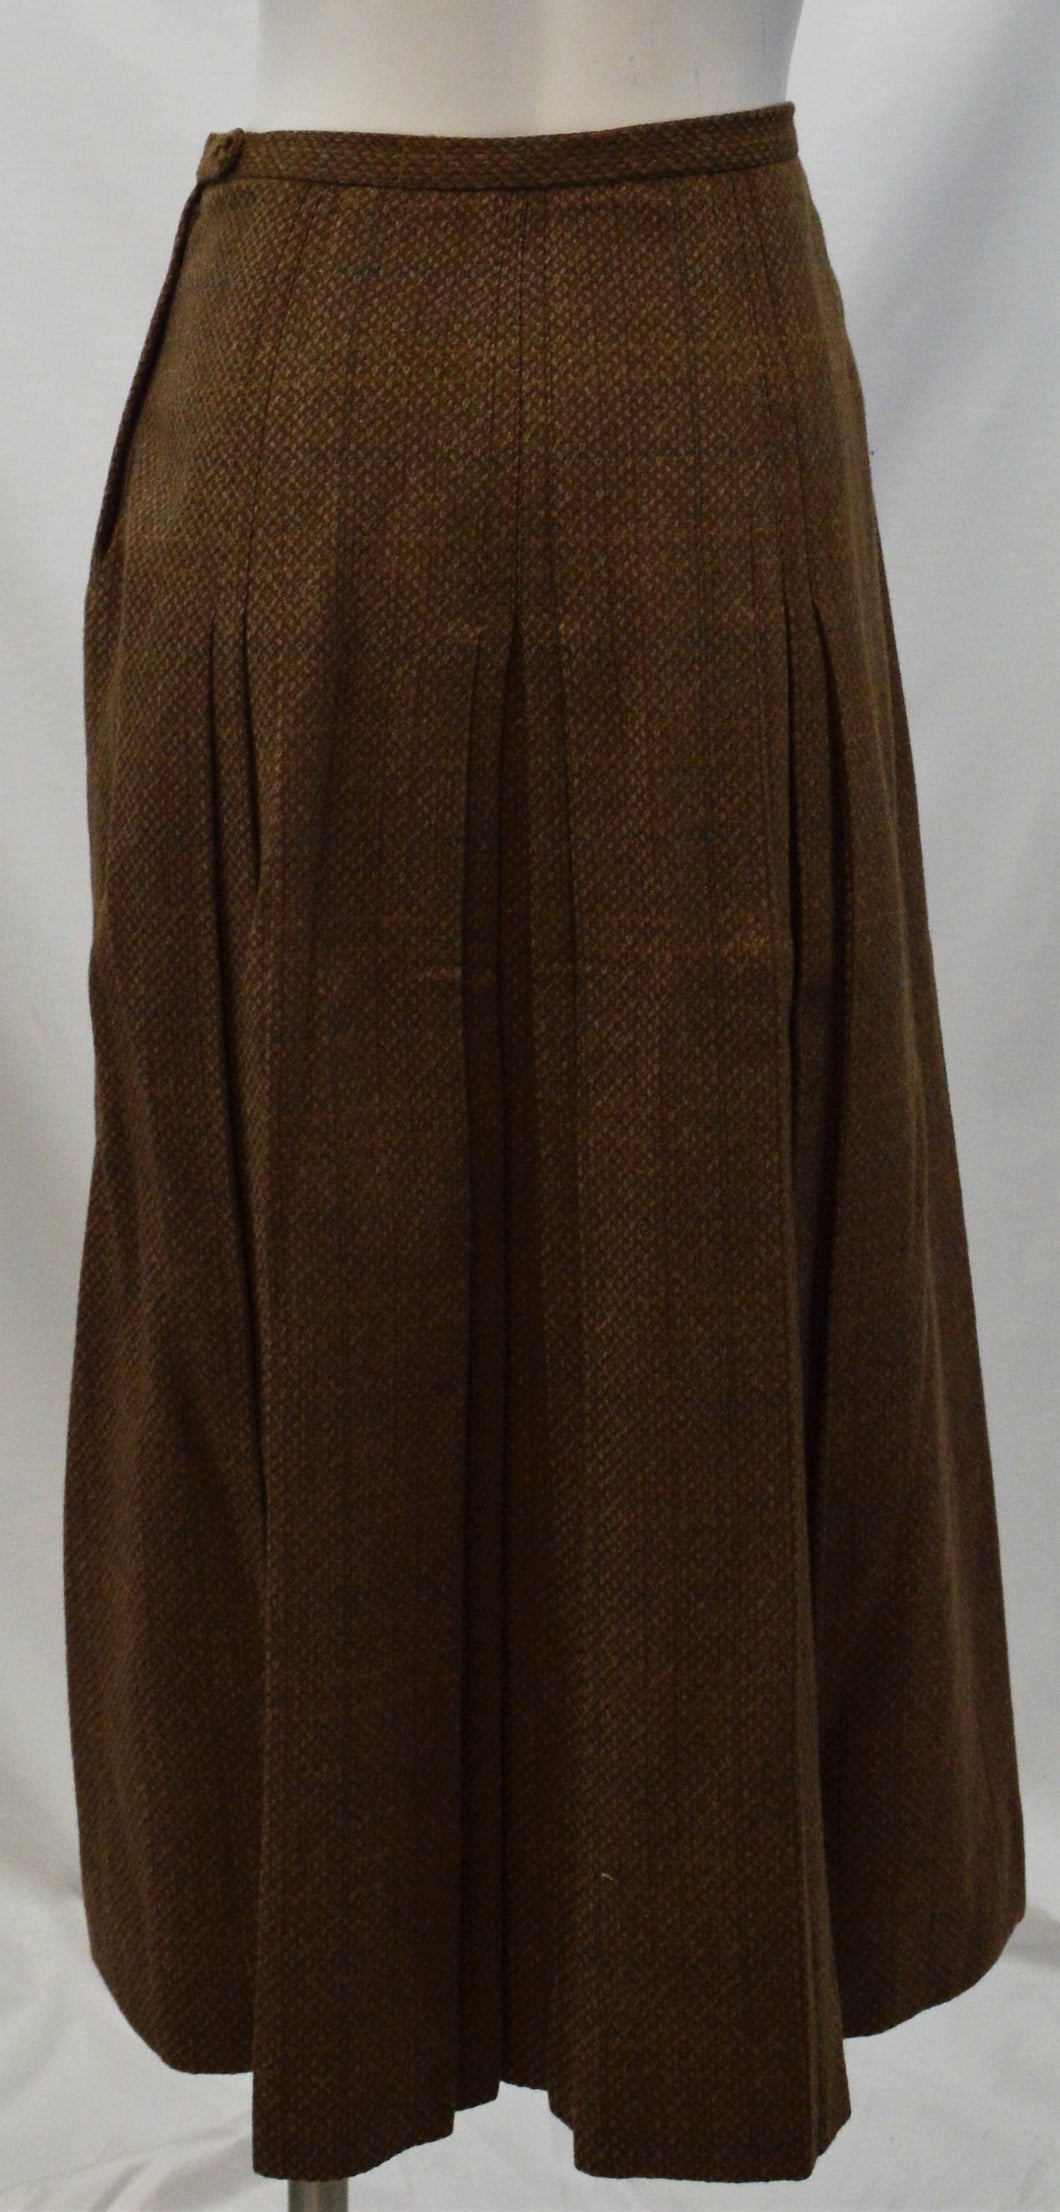 Women's Suit Skirt